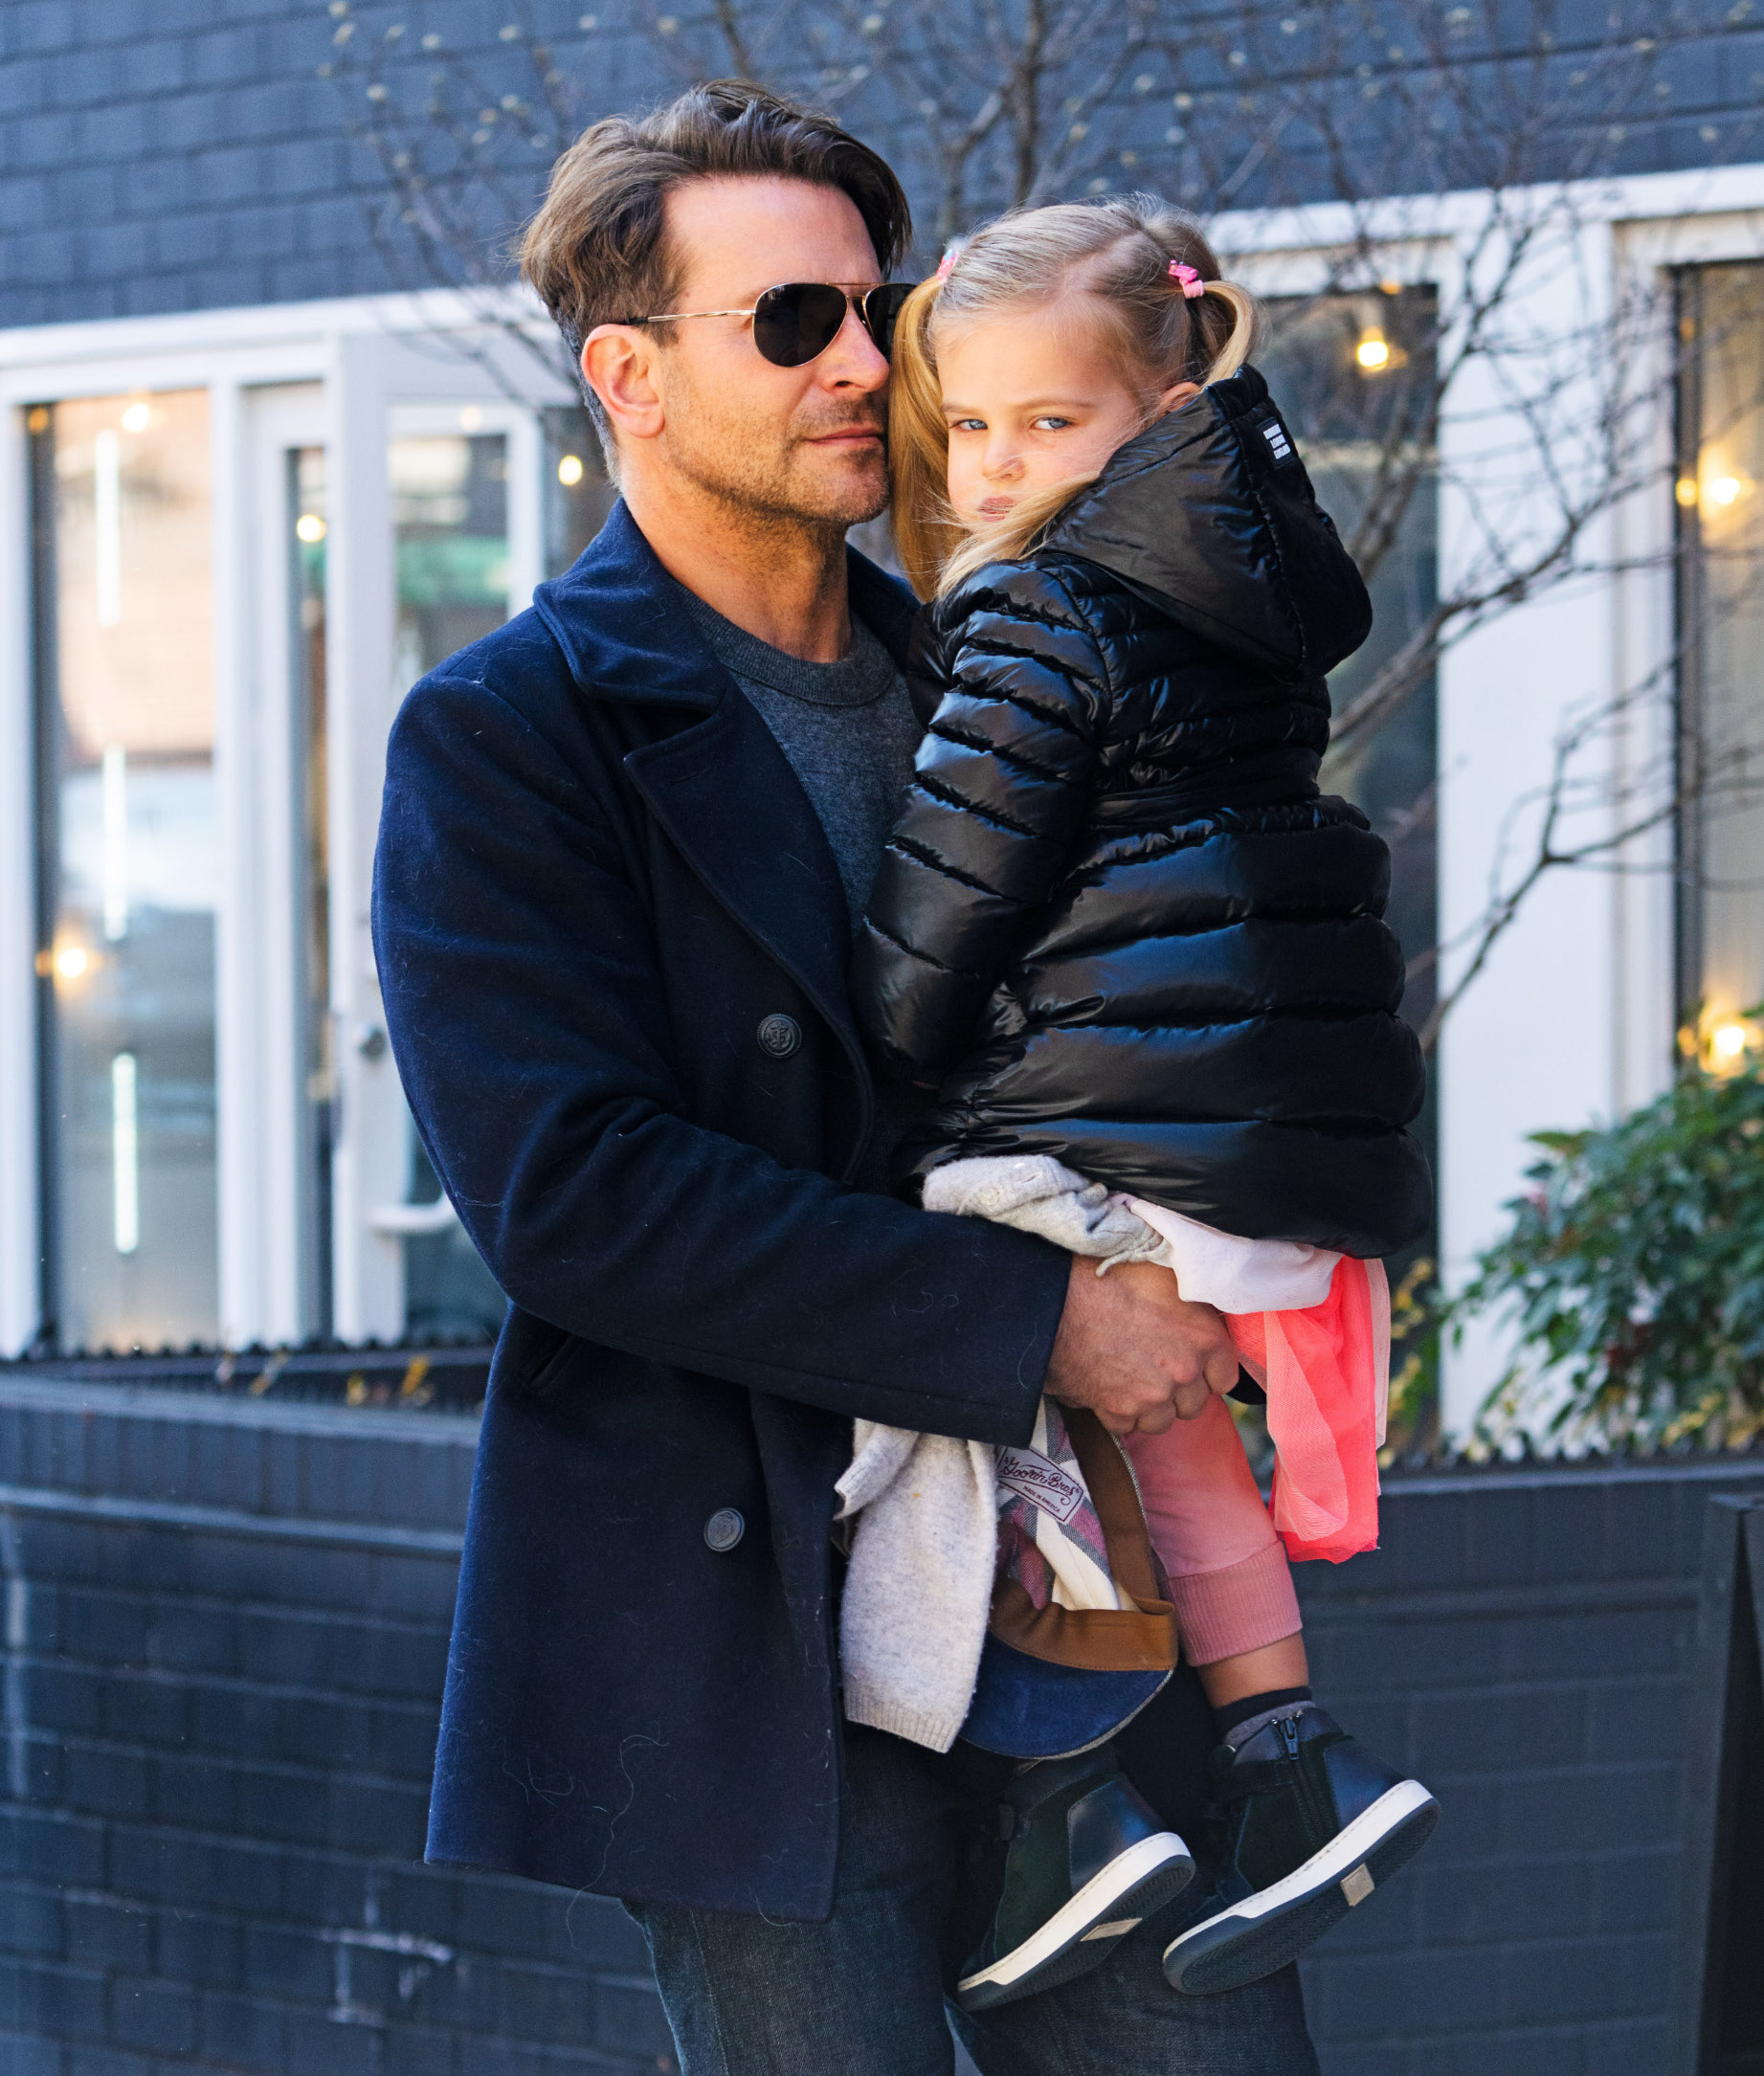 02/17/2020 EXCLUSIVE: Bradley Cooper holds his daughter close in New York City. The 45 year old doting dad wore a black wool coat, dark trousers, and leather shoes., Image: 499134058, License: Rights-managed, Restrictions: Exclusive NO usage without agreed price and terms. Please contact sales@theimagedirect.com, Model Release: no, Credit line: TheImageDirect.com / The Image Direct / Profimedia